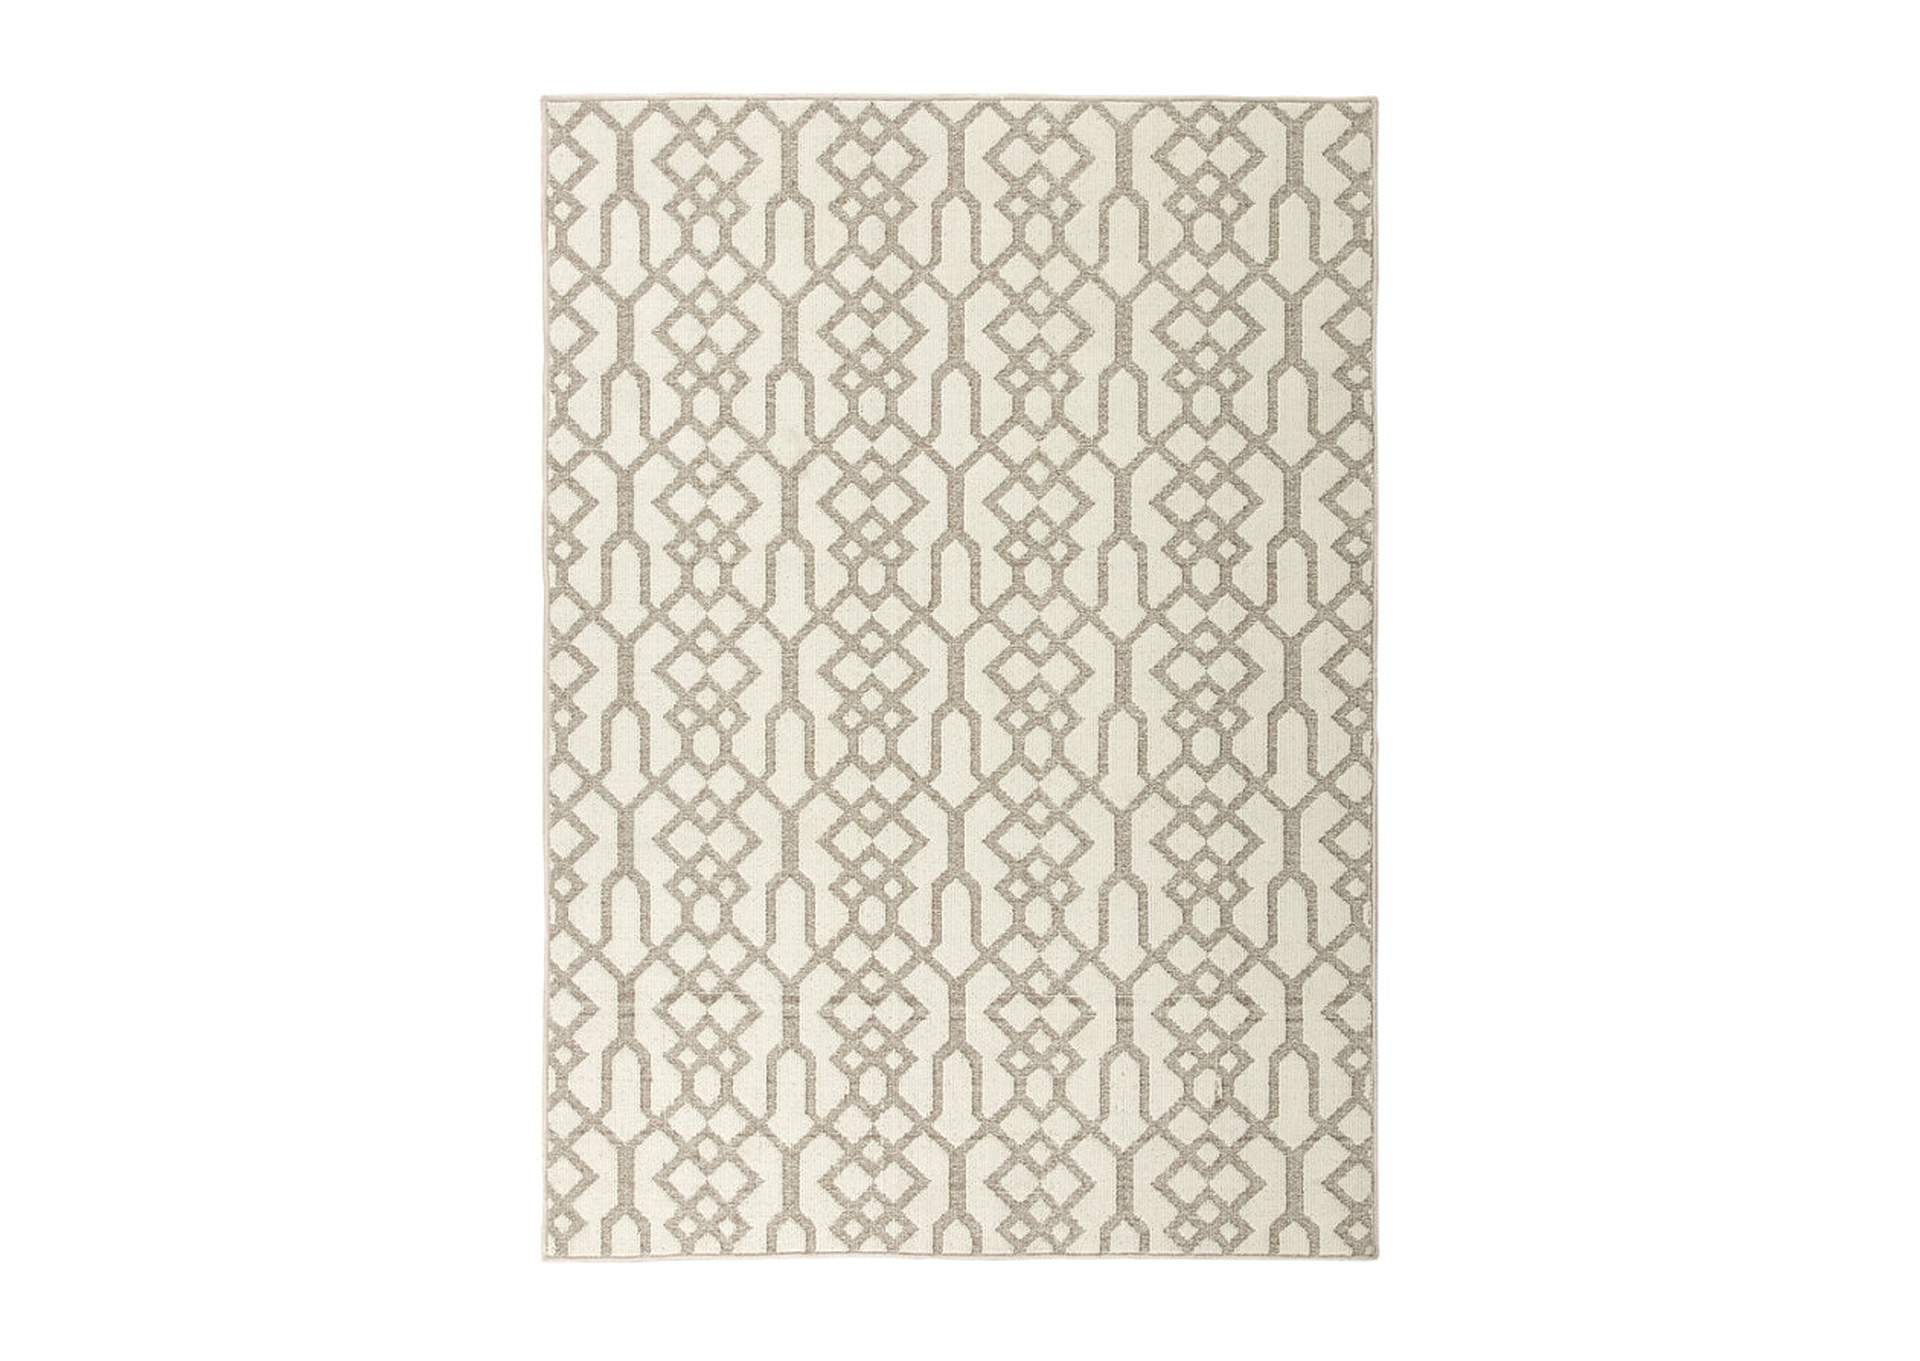 Coulee Natural Medium Rug,Direct To Consumer Express